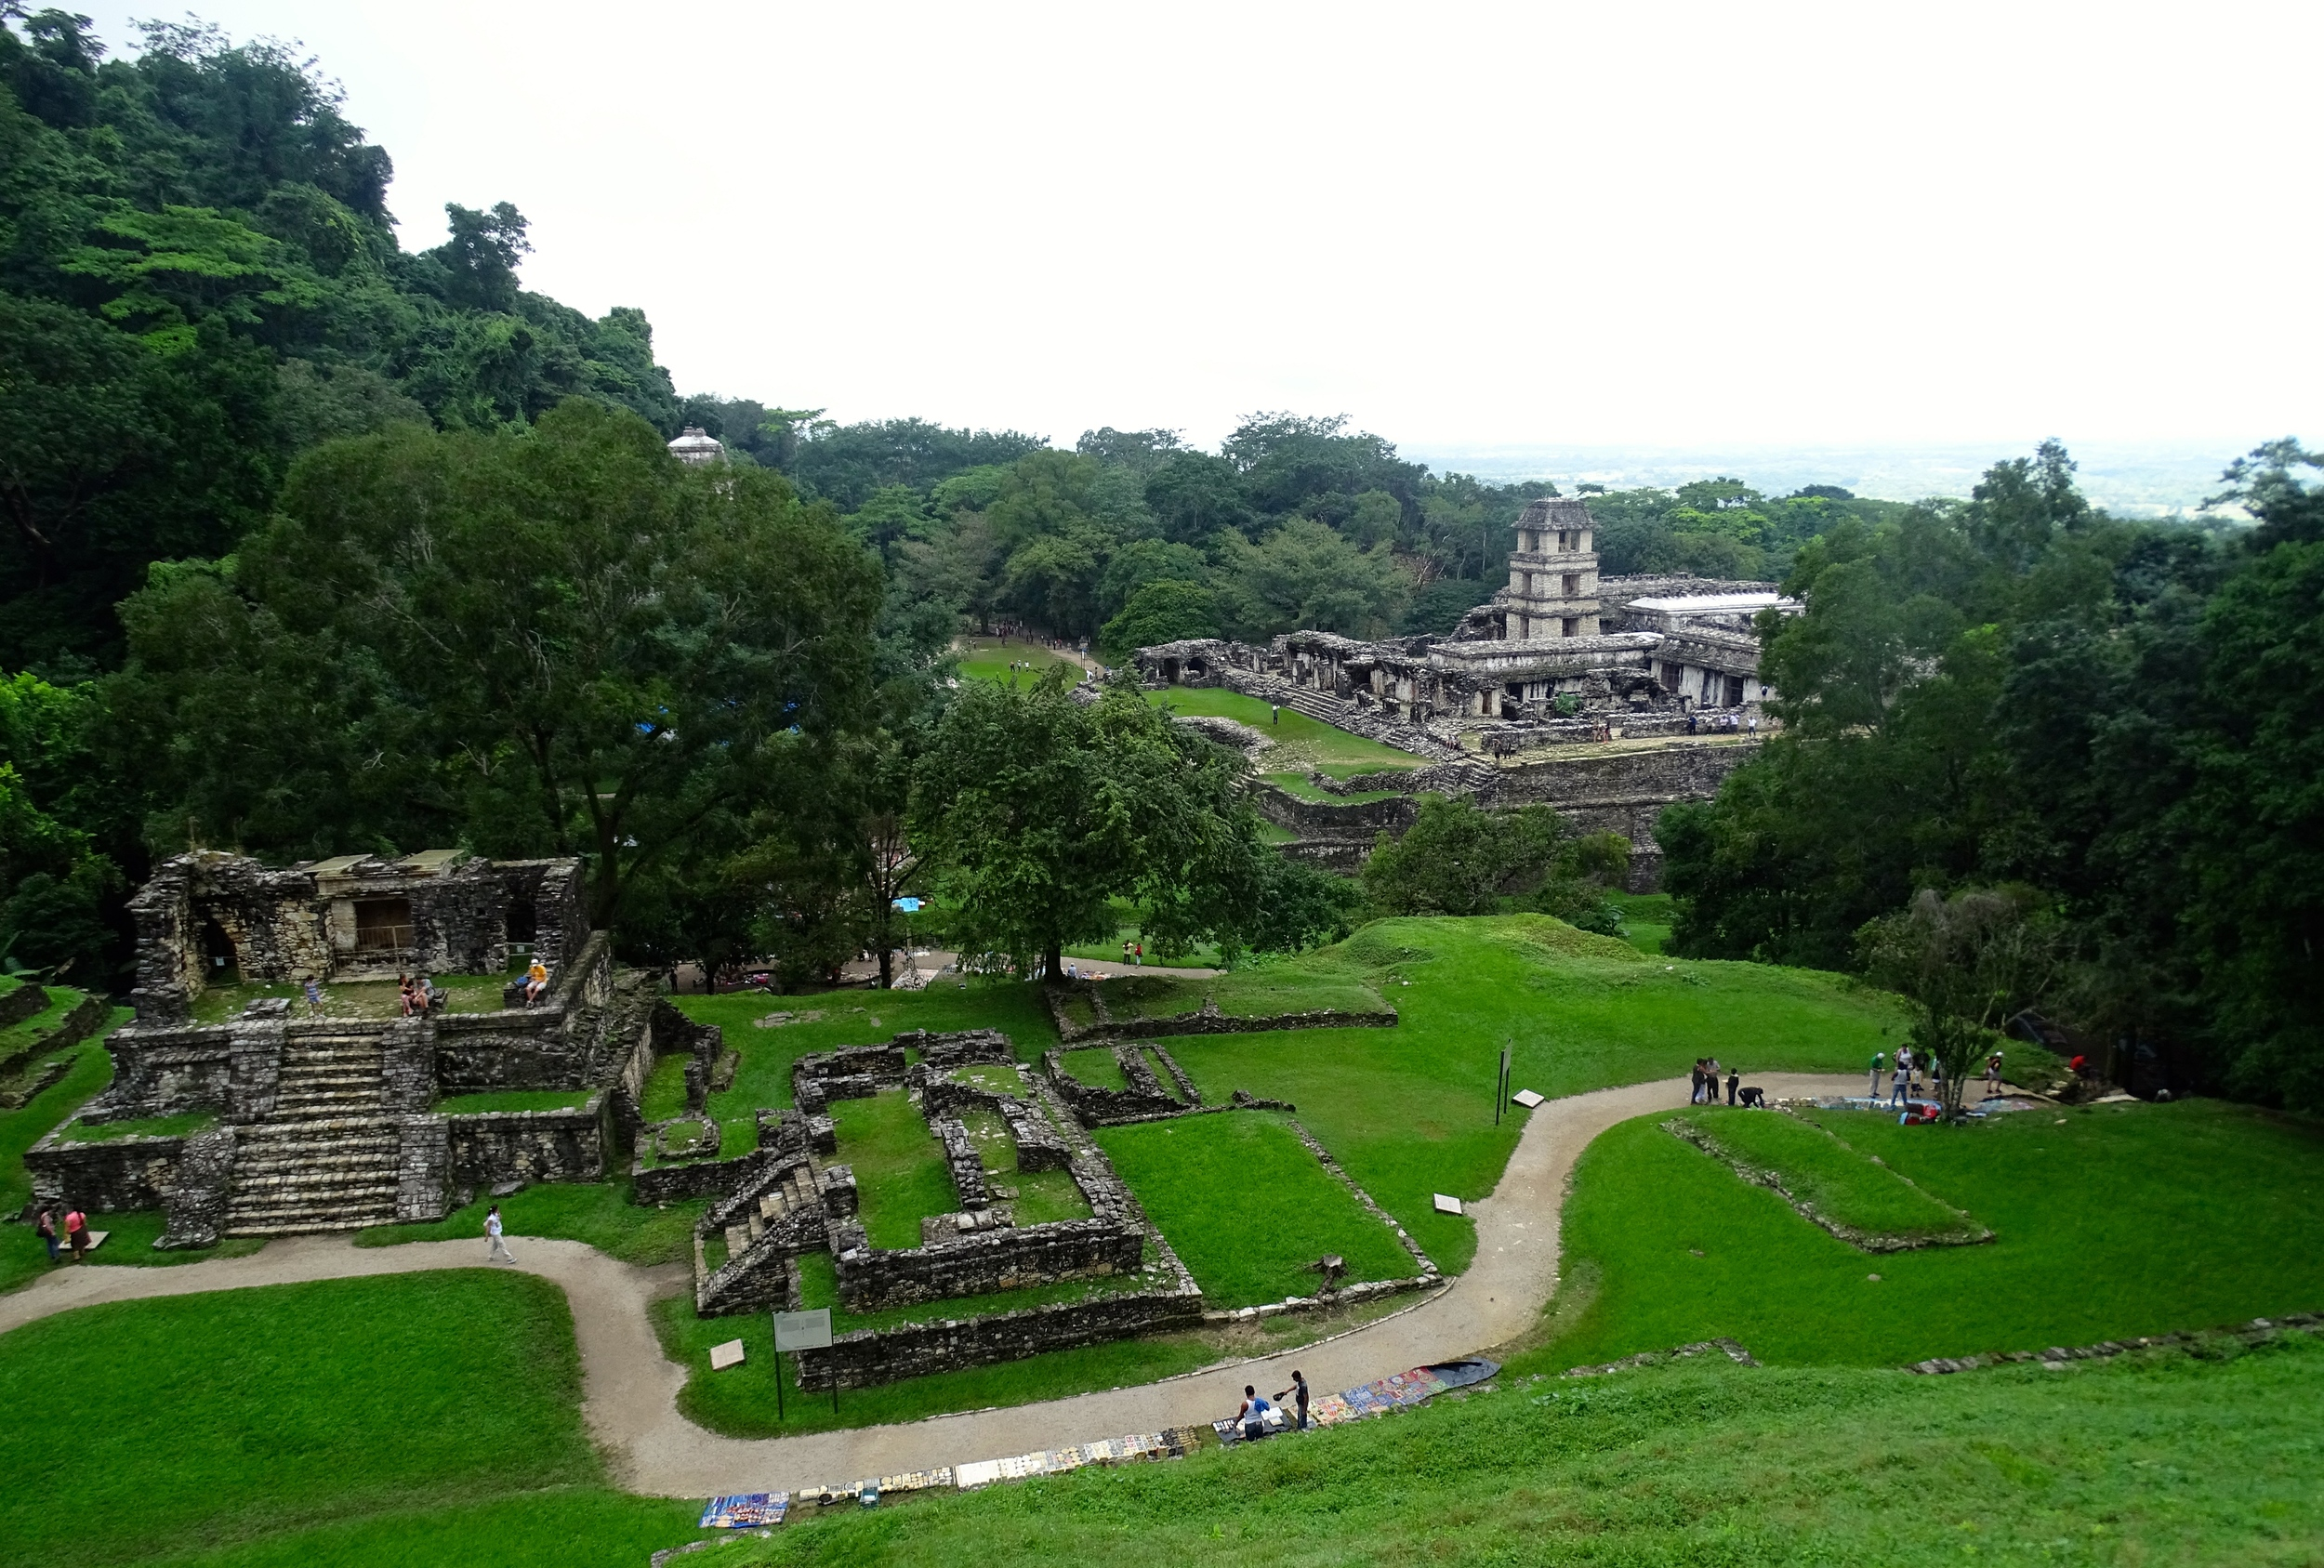 A small portion of the Palenque ruins.